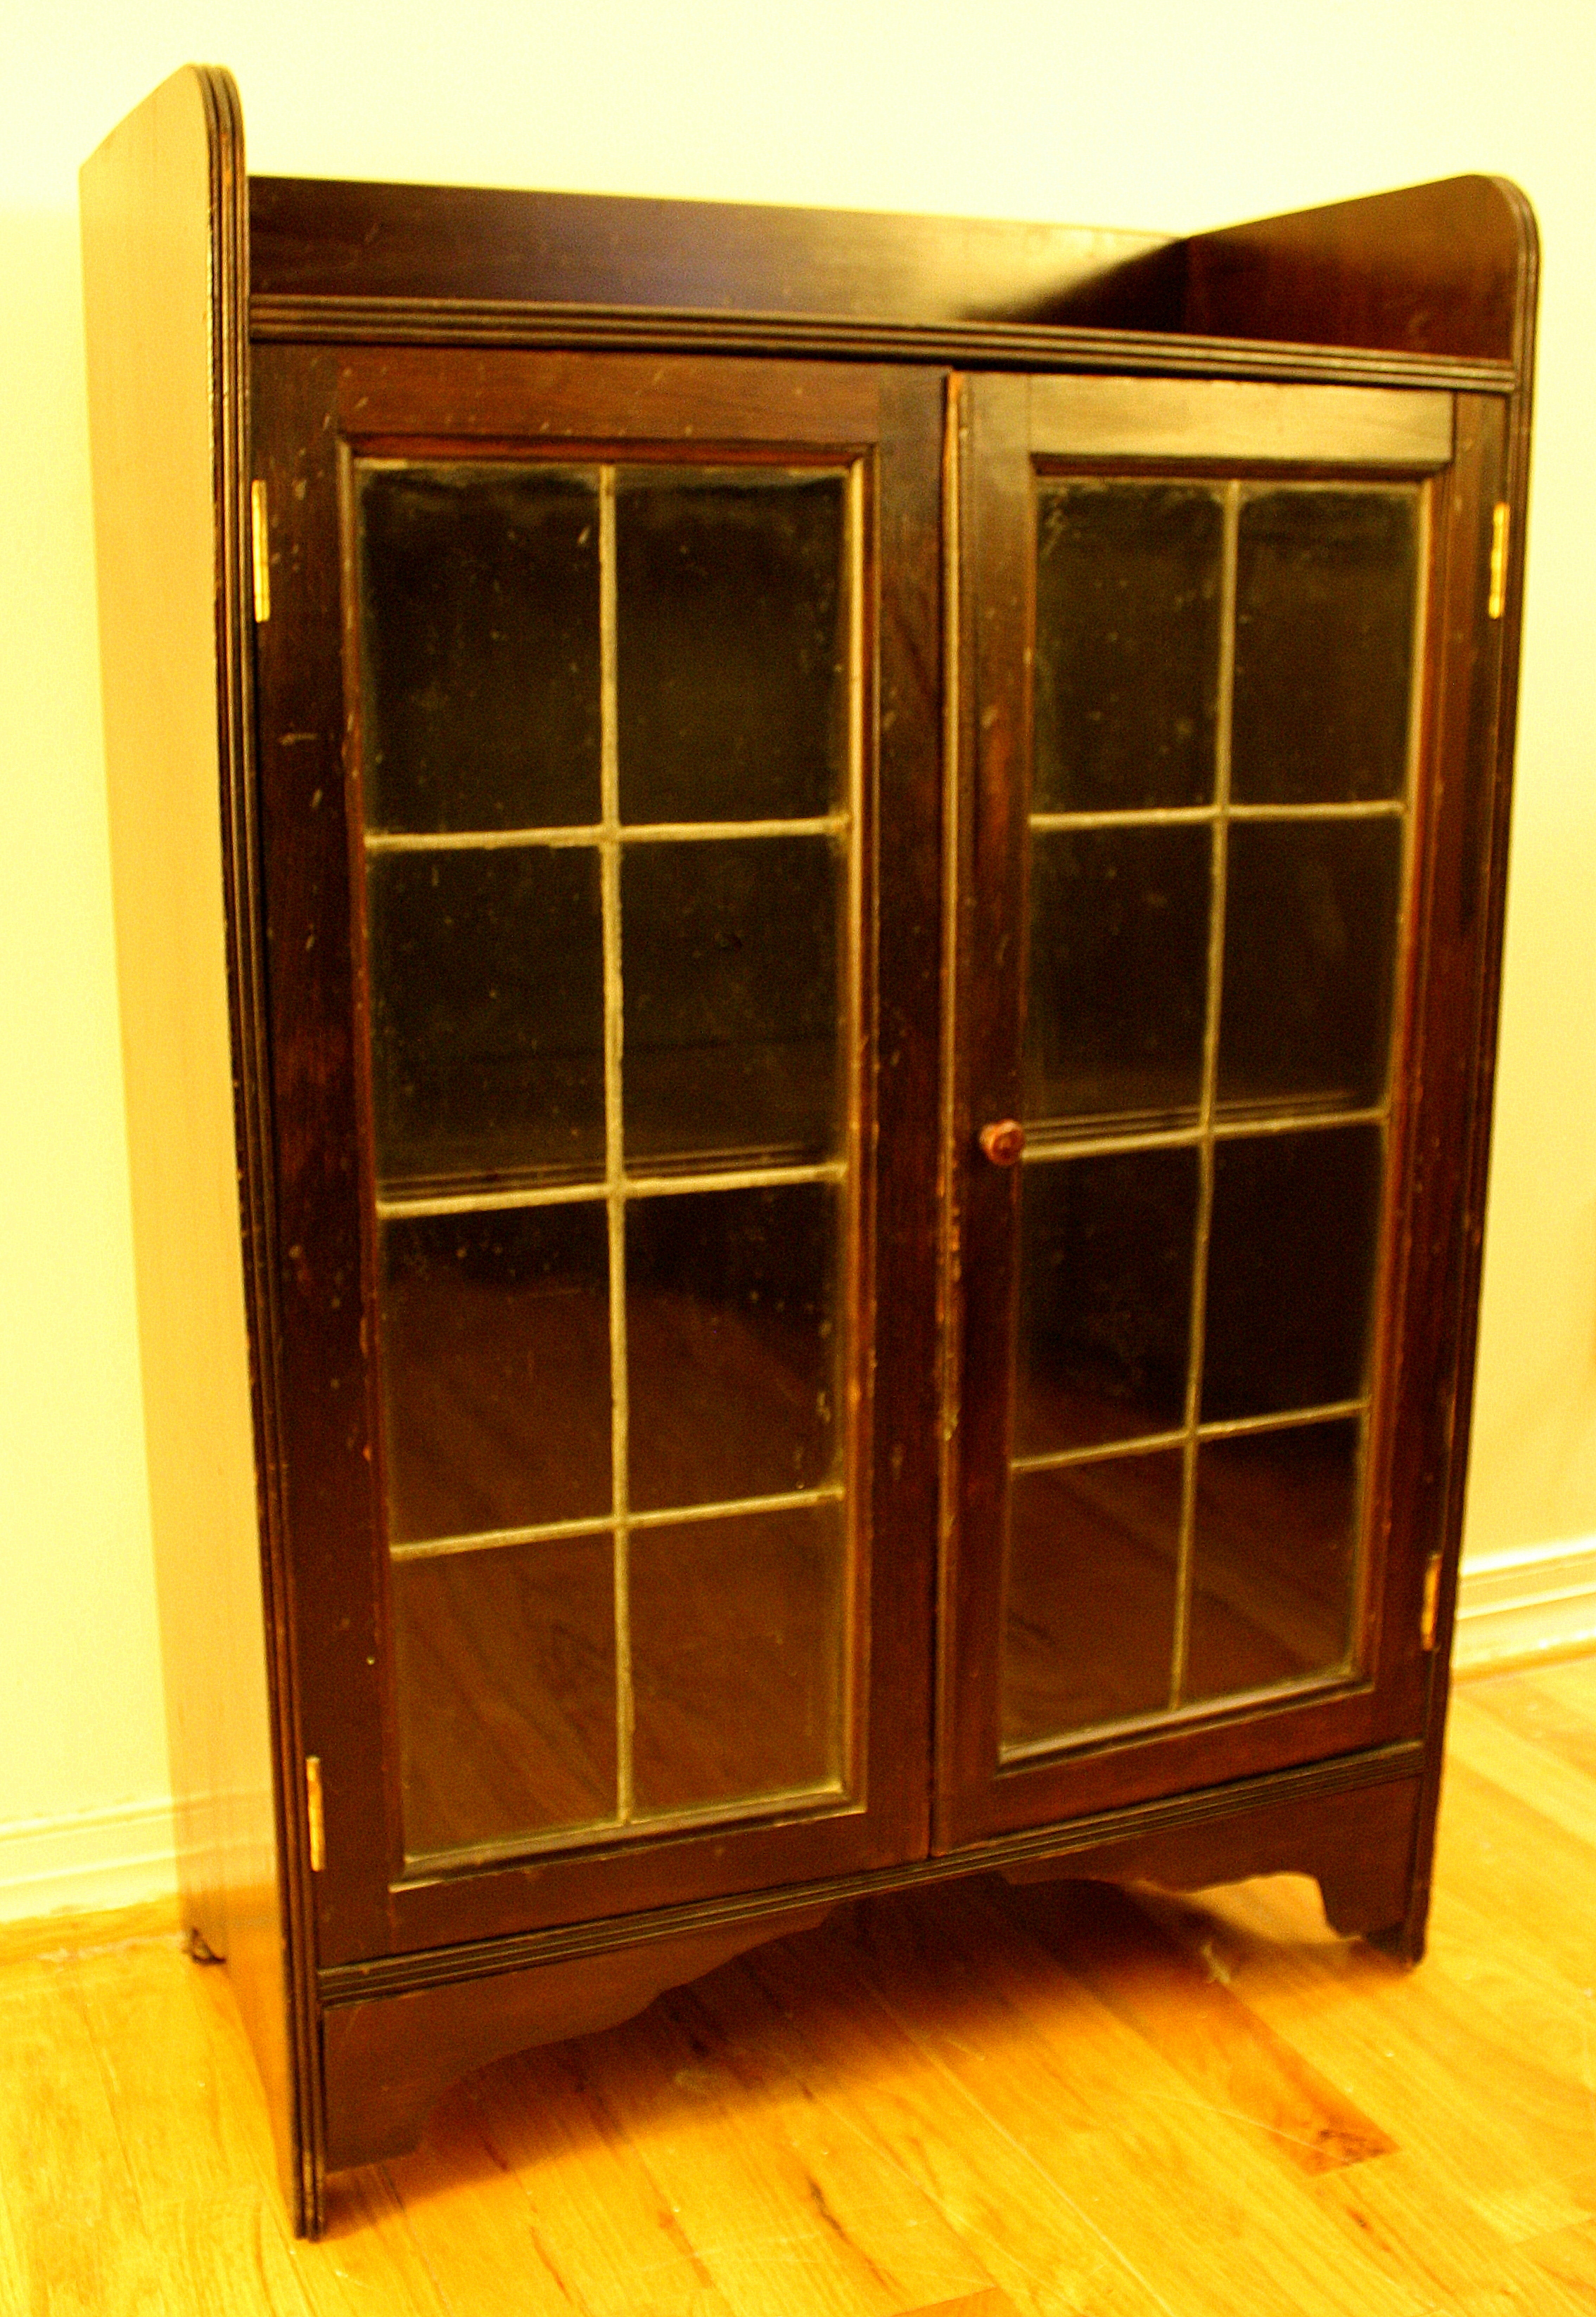 Antique Wood Cabinet With Leaded Glass Windows Picked